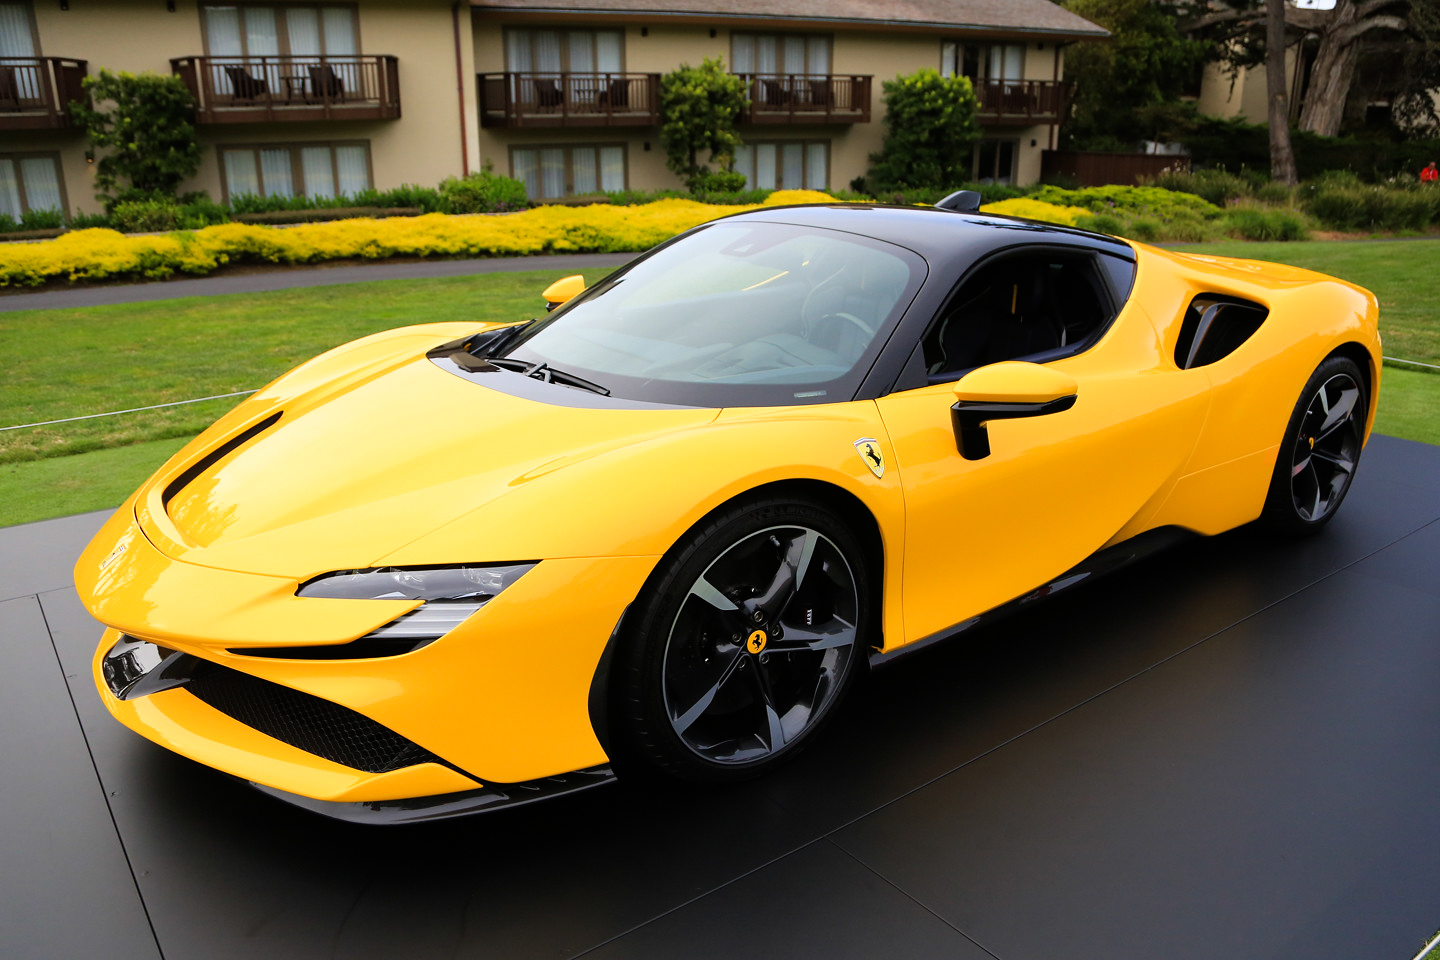 Ferrari Sf90 Stradale Pricing For South Africa